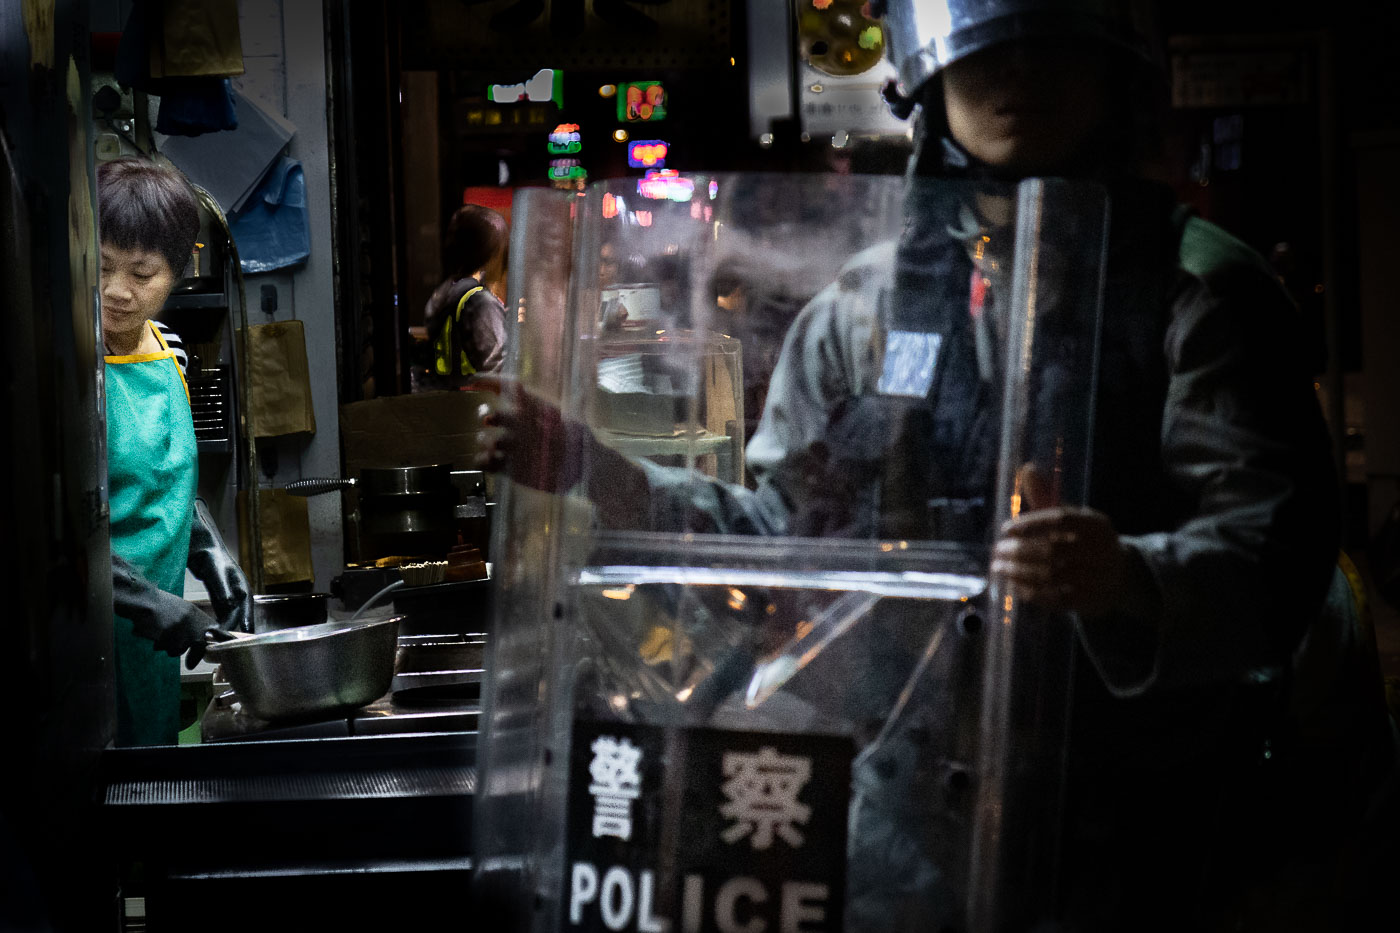 A woman continues cooking at a corner noodle shop, ignoring a riot cop standing nearby.